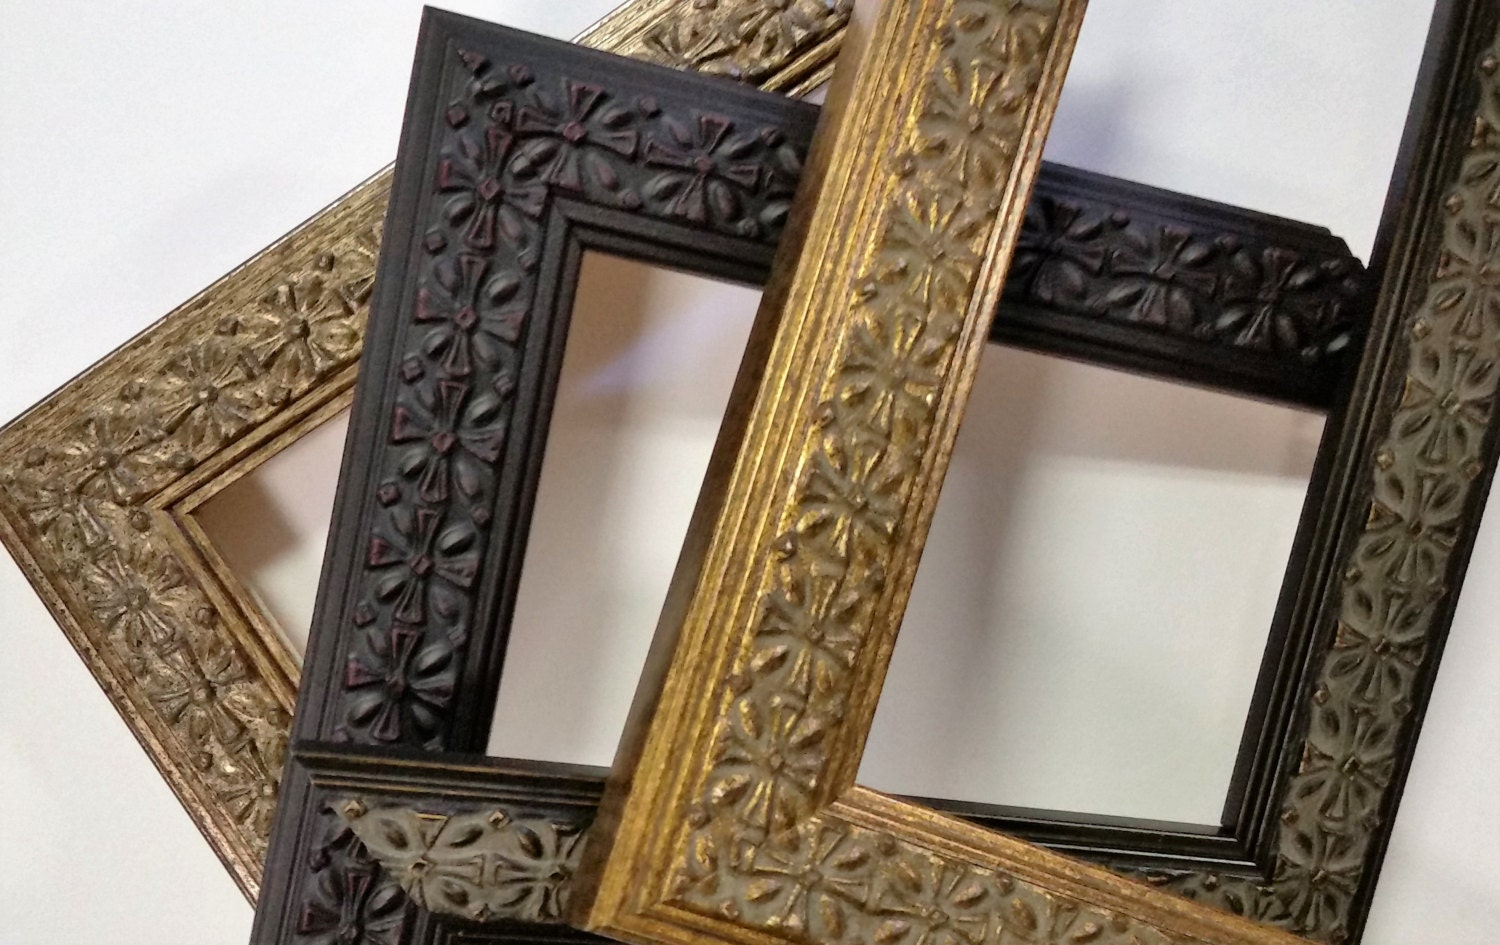 8 x 10 - 12 x 16 Wood Picture Frames, Ornate, Vintage, Traditional ...